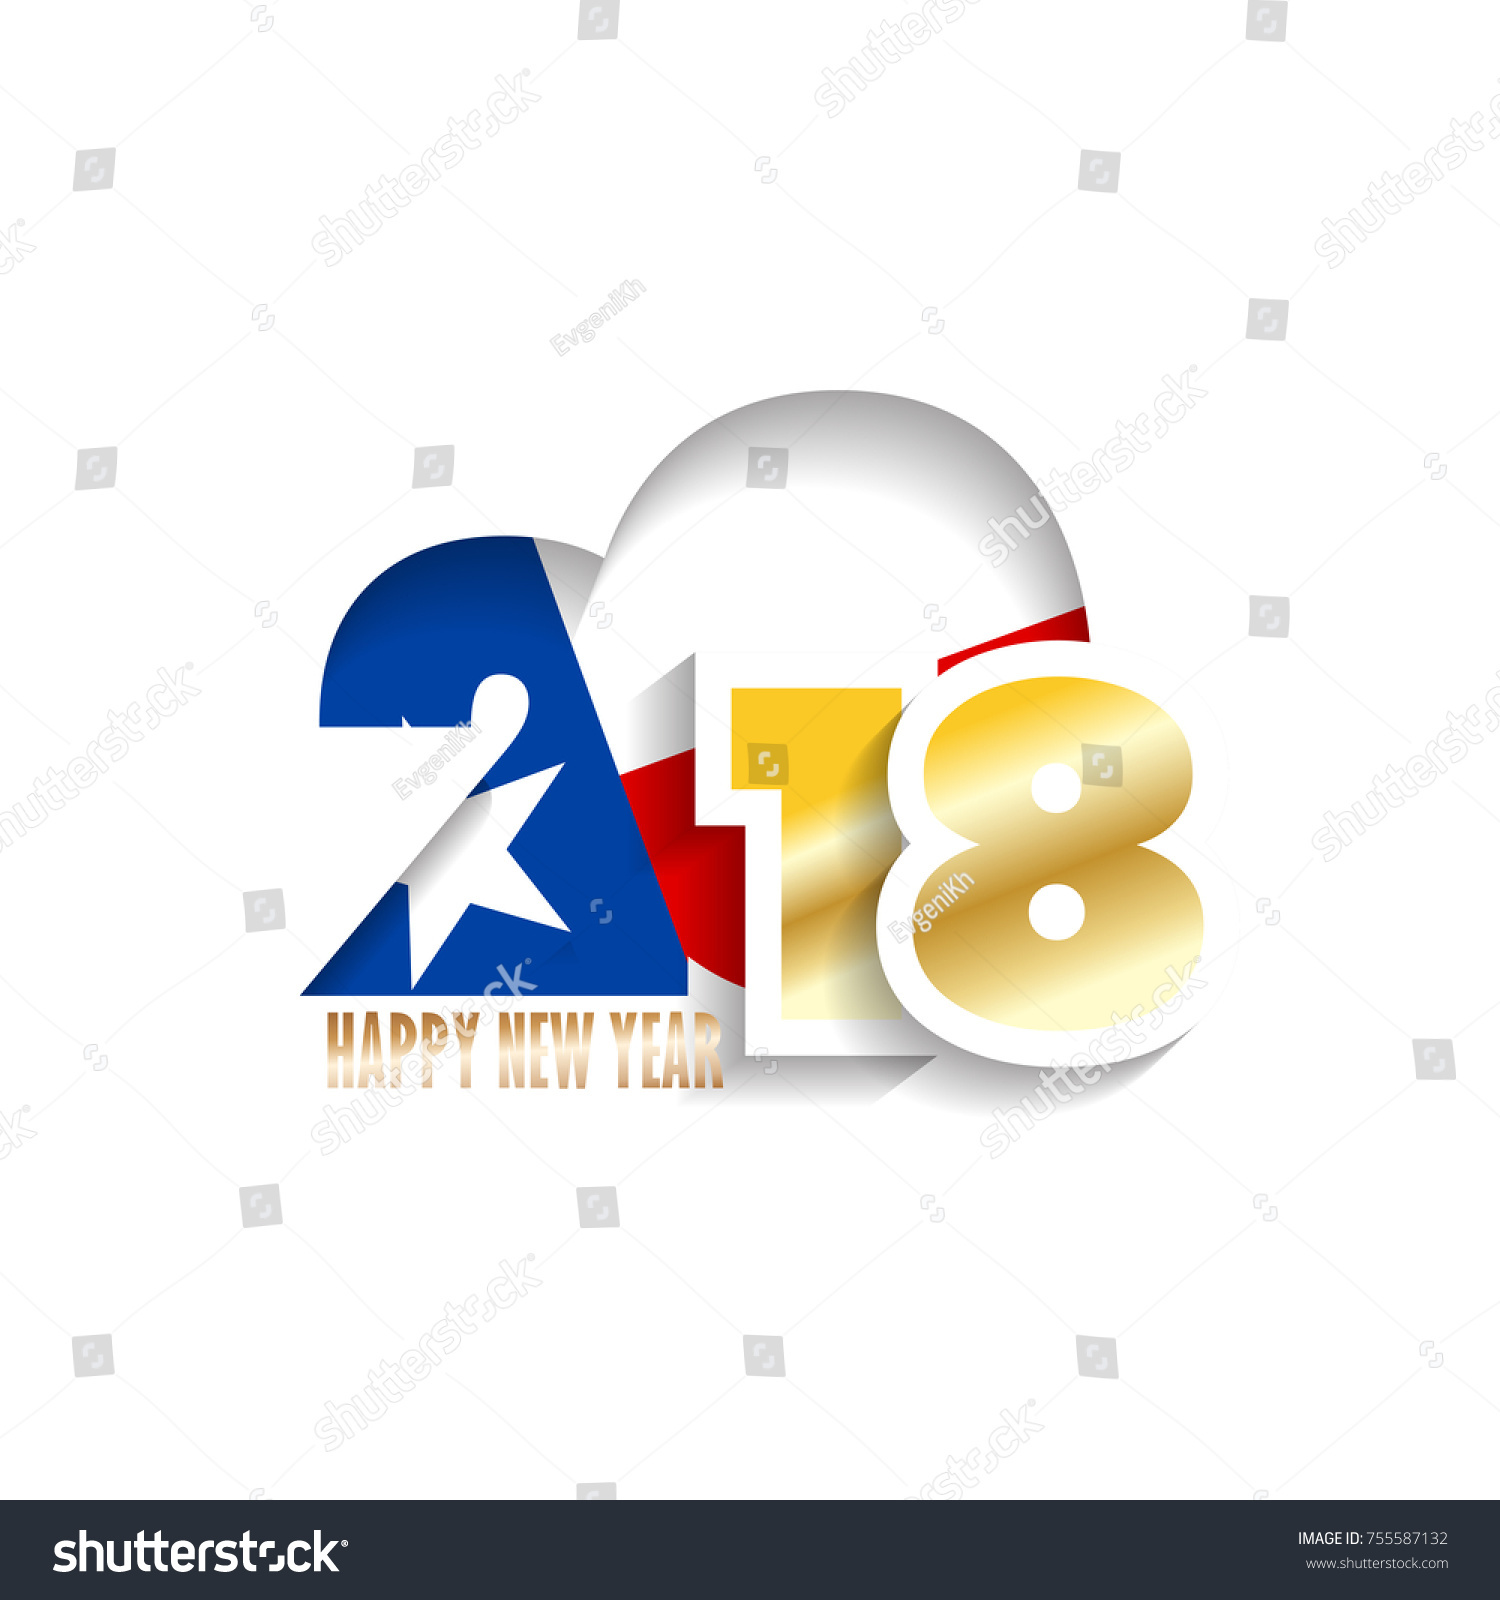 year 2018 with texas flag pattern happy new year design vector illustration